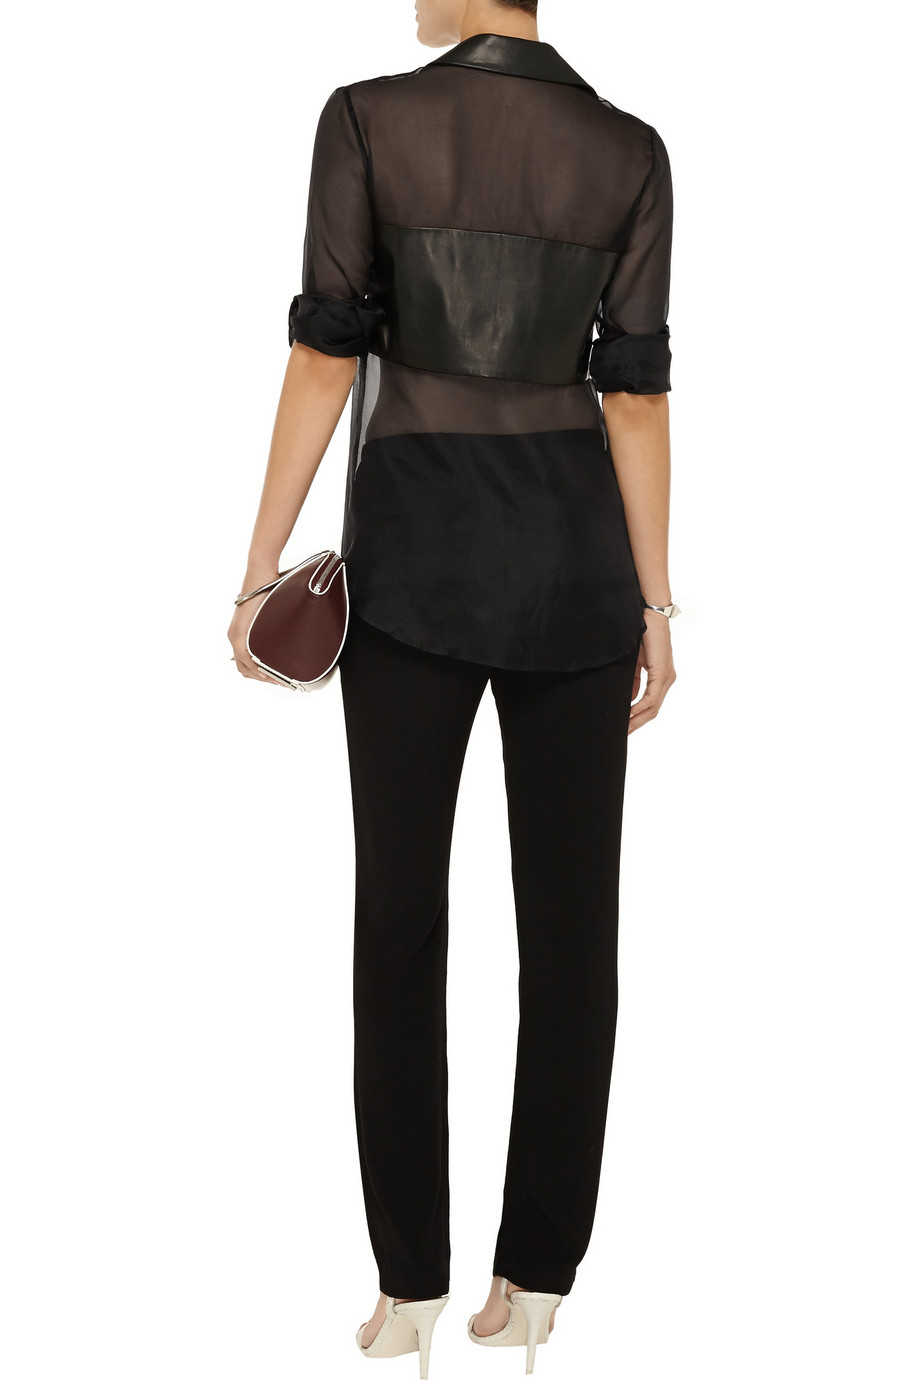 Thakoon Addition Leather-paneled silk-organza shirt – 60% at THE OUTNET.COM